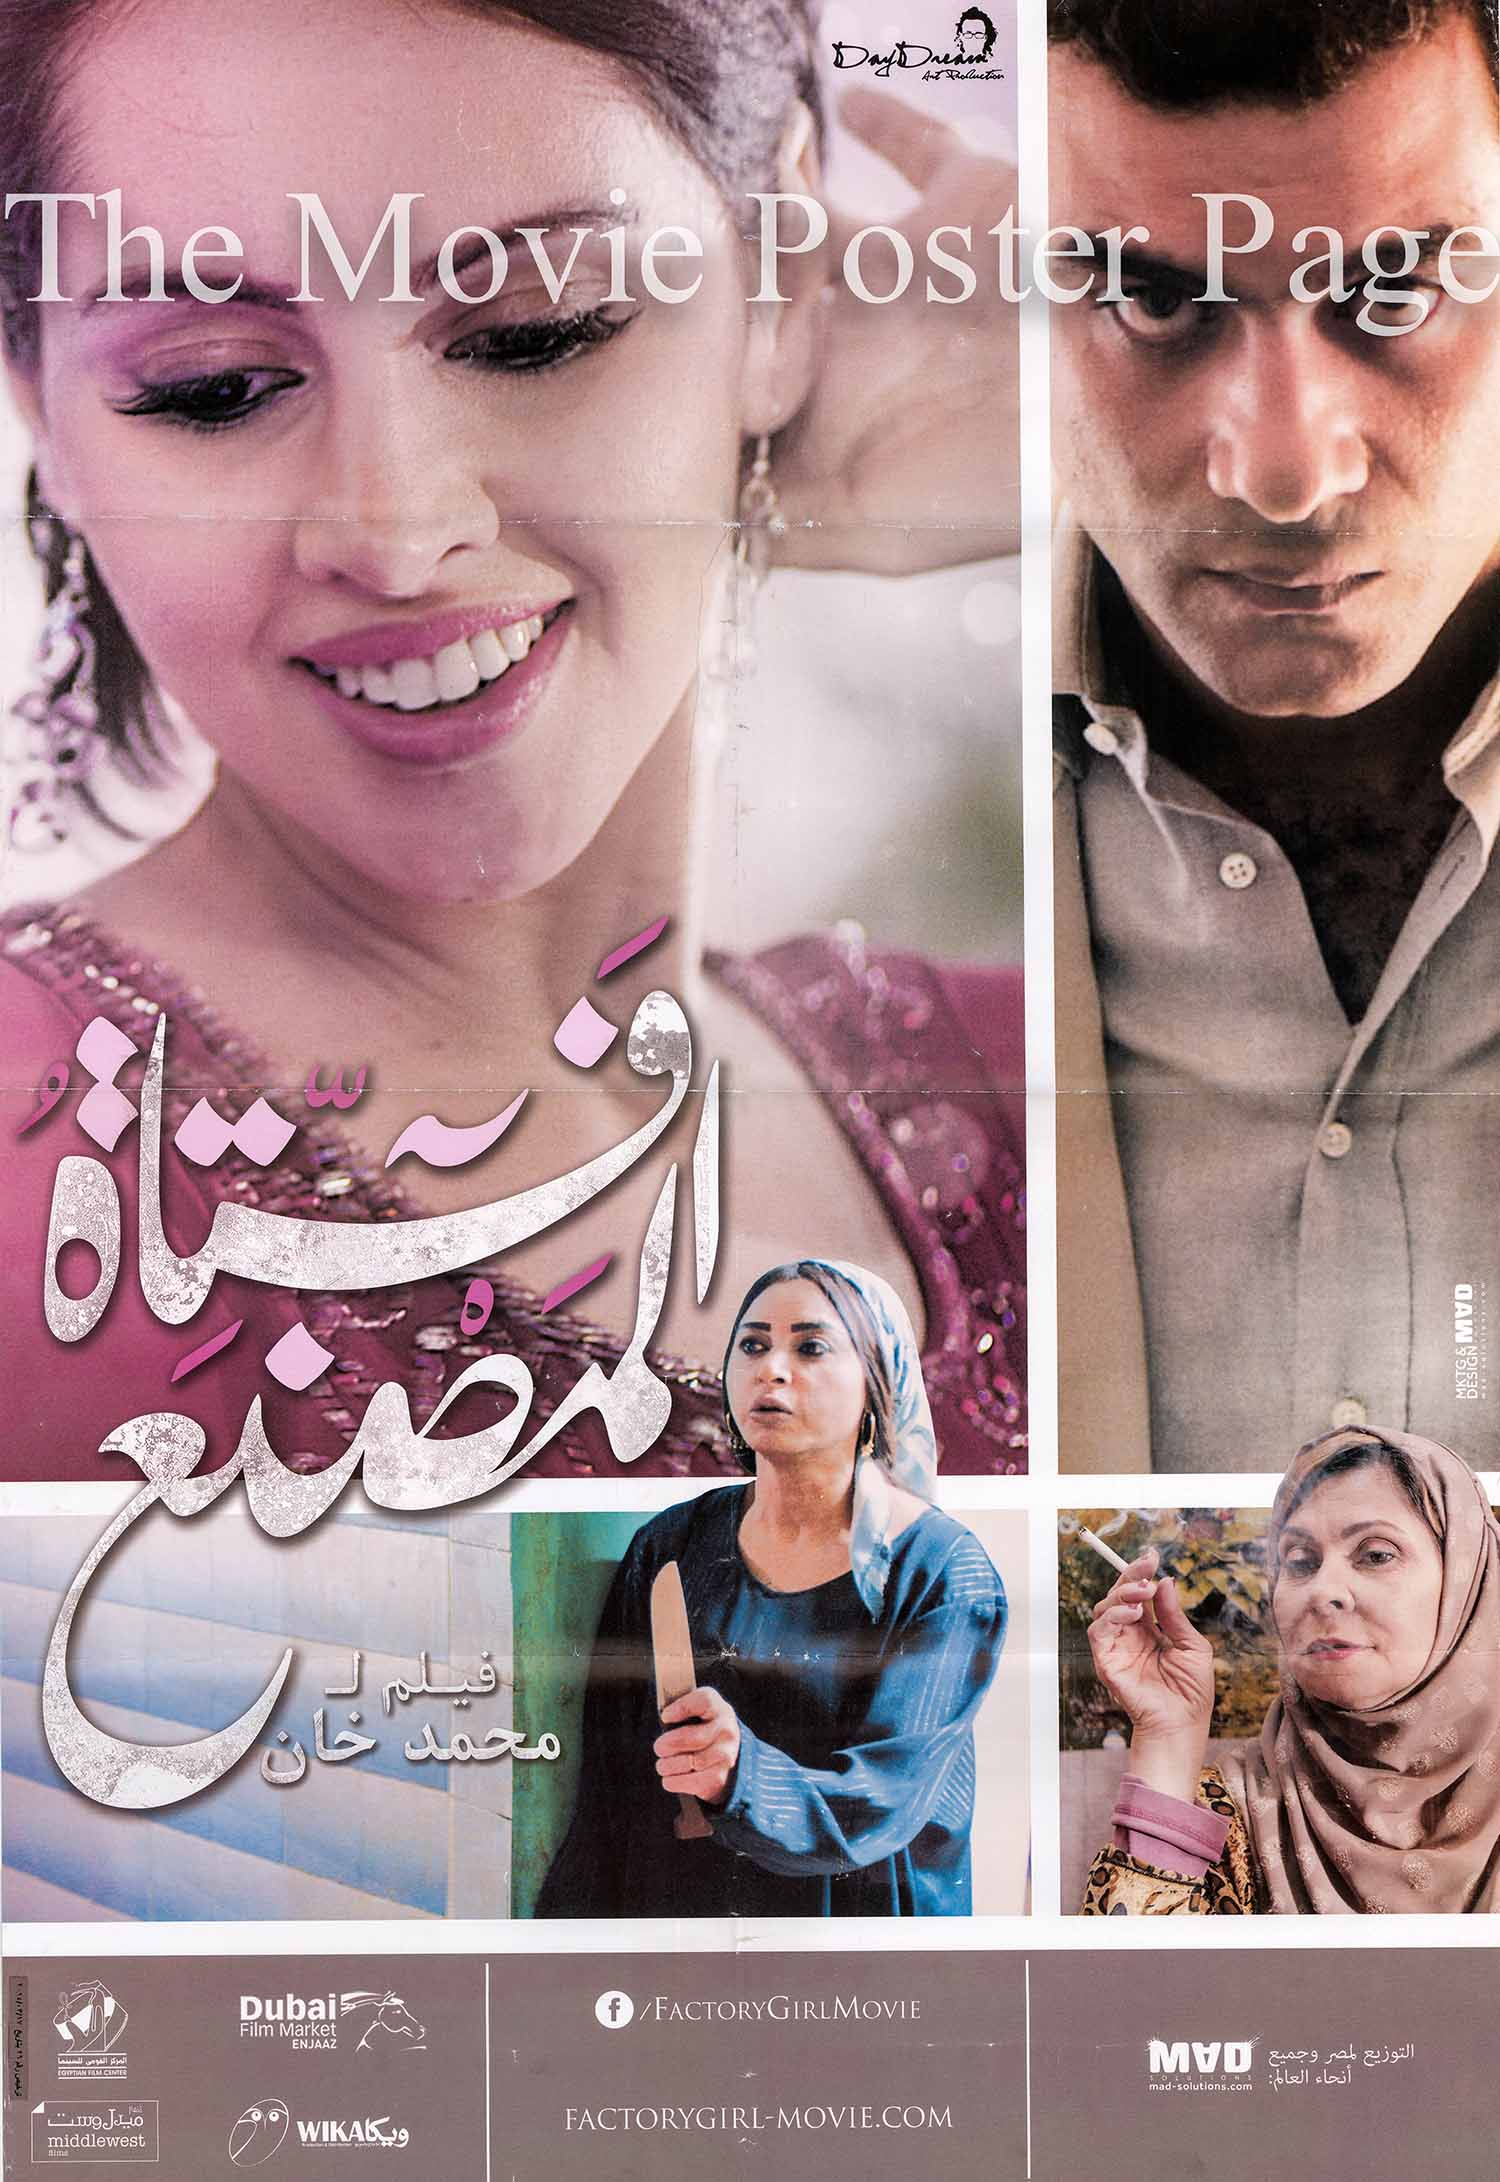 Pictured is an Egyptian promotional poster for the 2014 Mohamed Khan film Factory Girl starring Yasmin Raeis as Ha Yam, the factory girl.